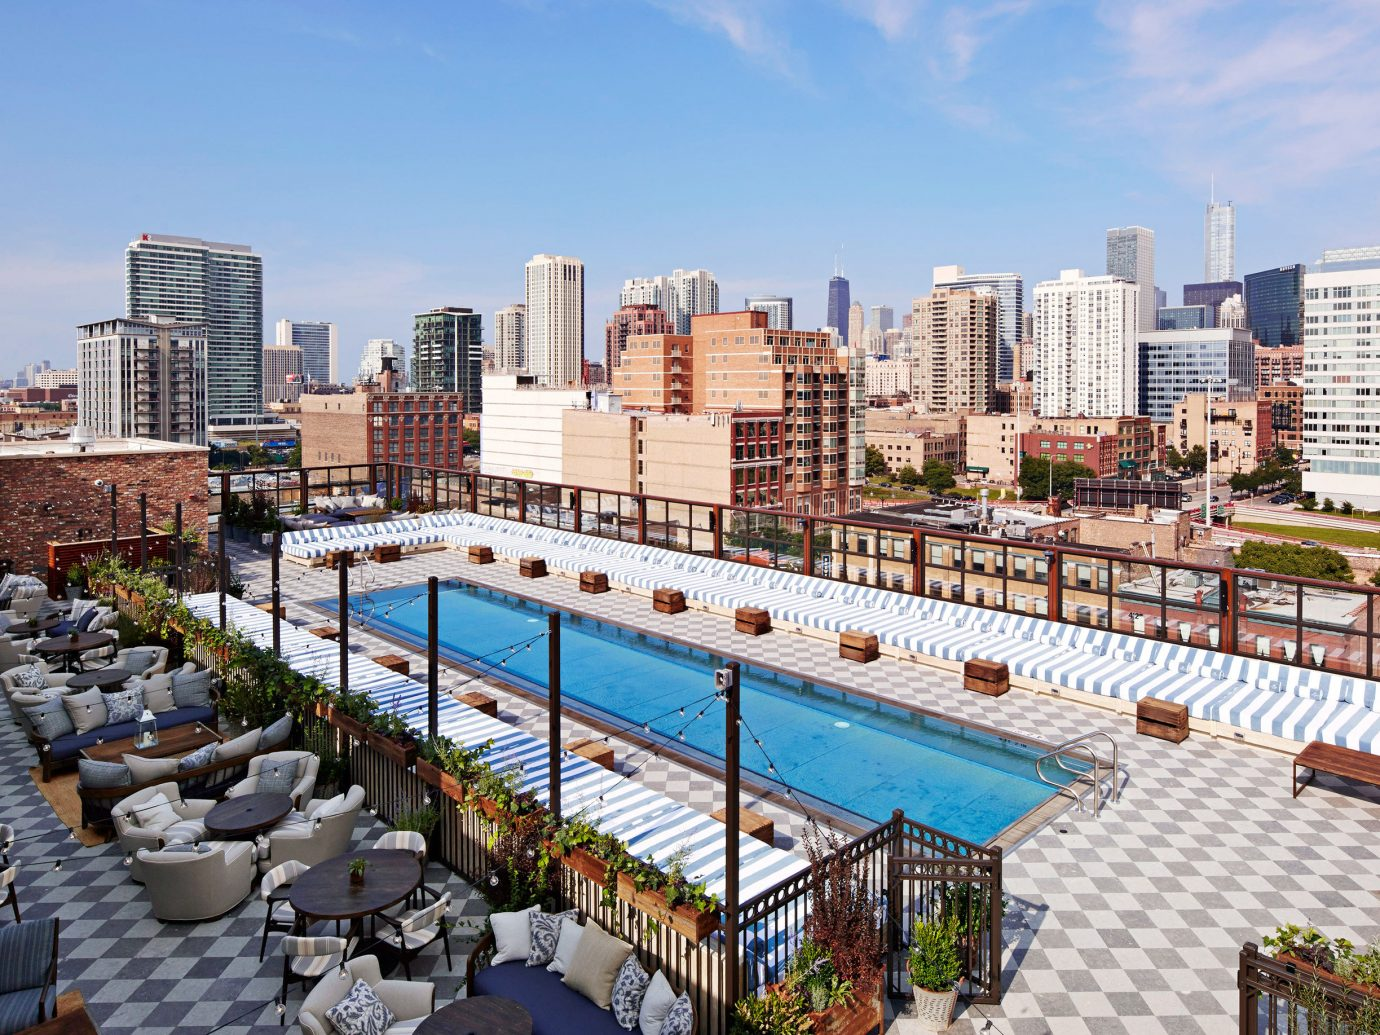 Boutique Hotels Chicago Hotels Jetsetter Guides Offbeat outdoor skyline geographical feature City metropolitan area cityscape Town human settlement condominium Downtown neighbourhood residential area metropolis skyscraper plaza Harbor marina tower block